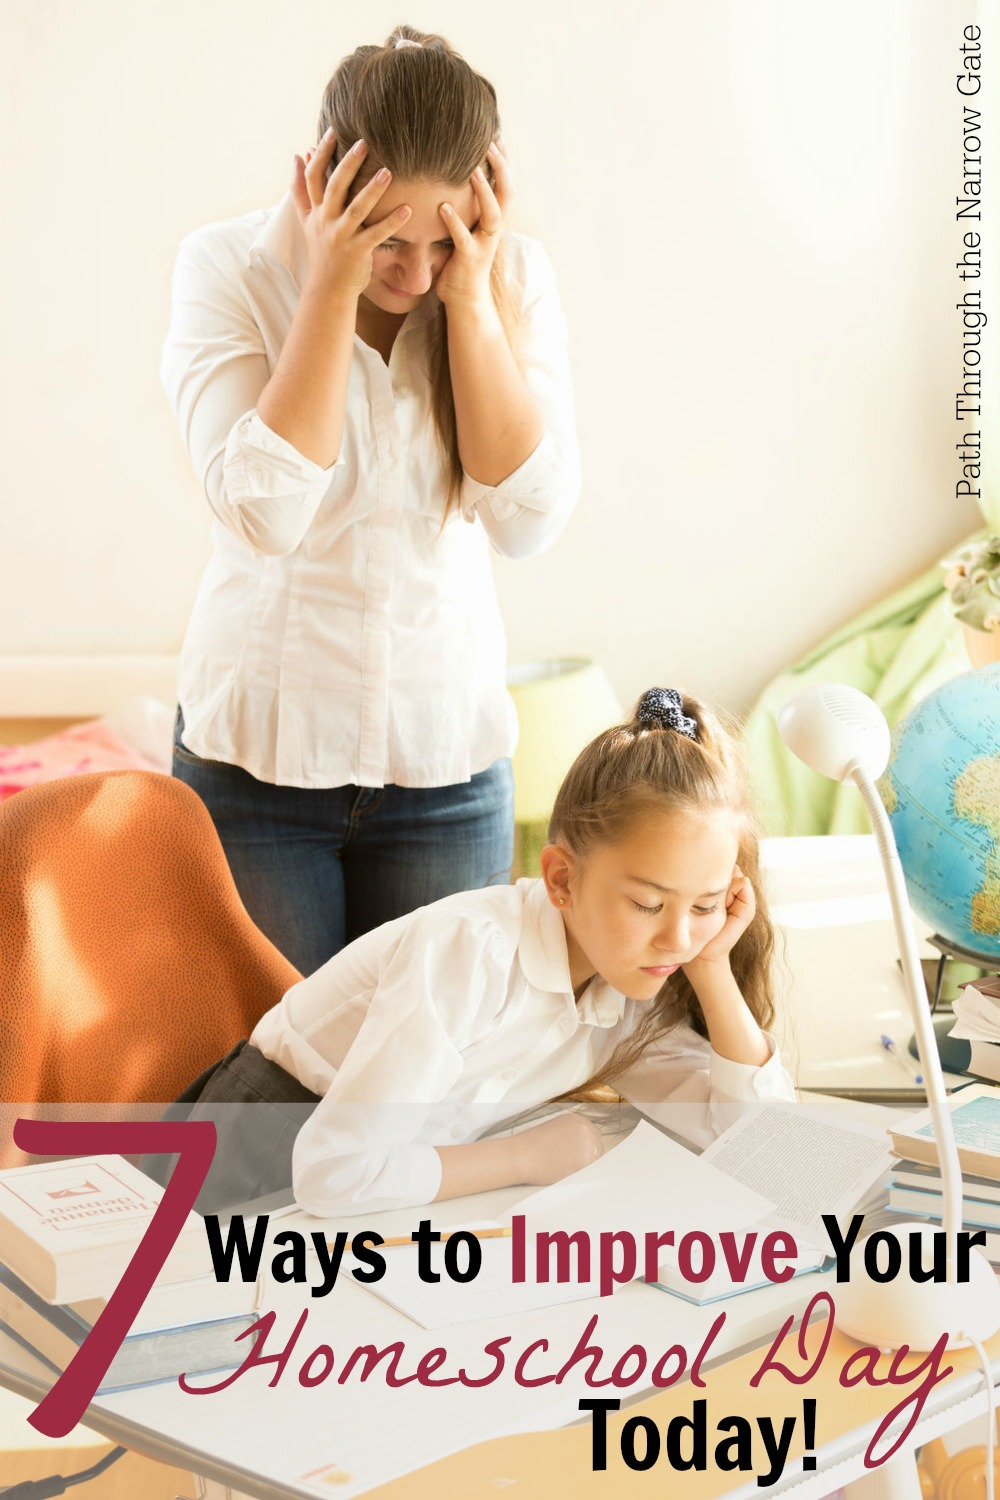 Are you suffering from homeschool fatigue? These seven habits will help you and your children stay focused when the year starts feeling long.